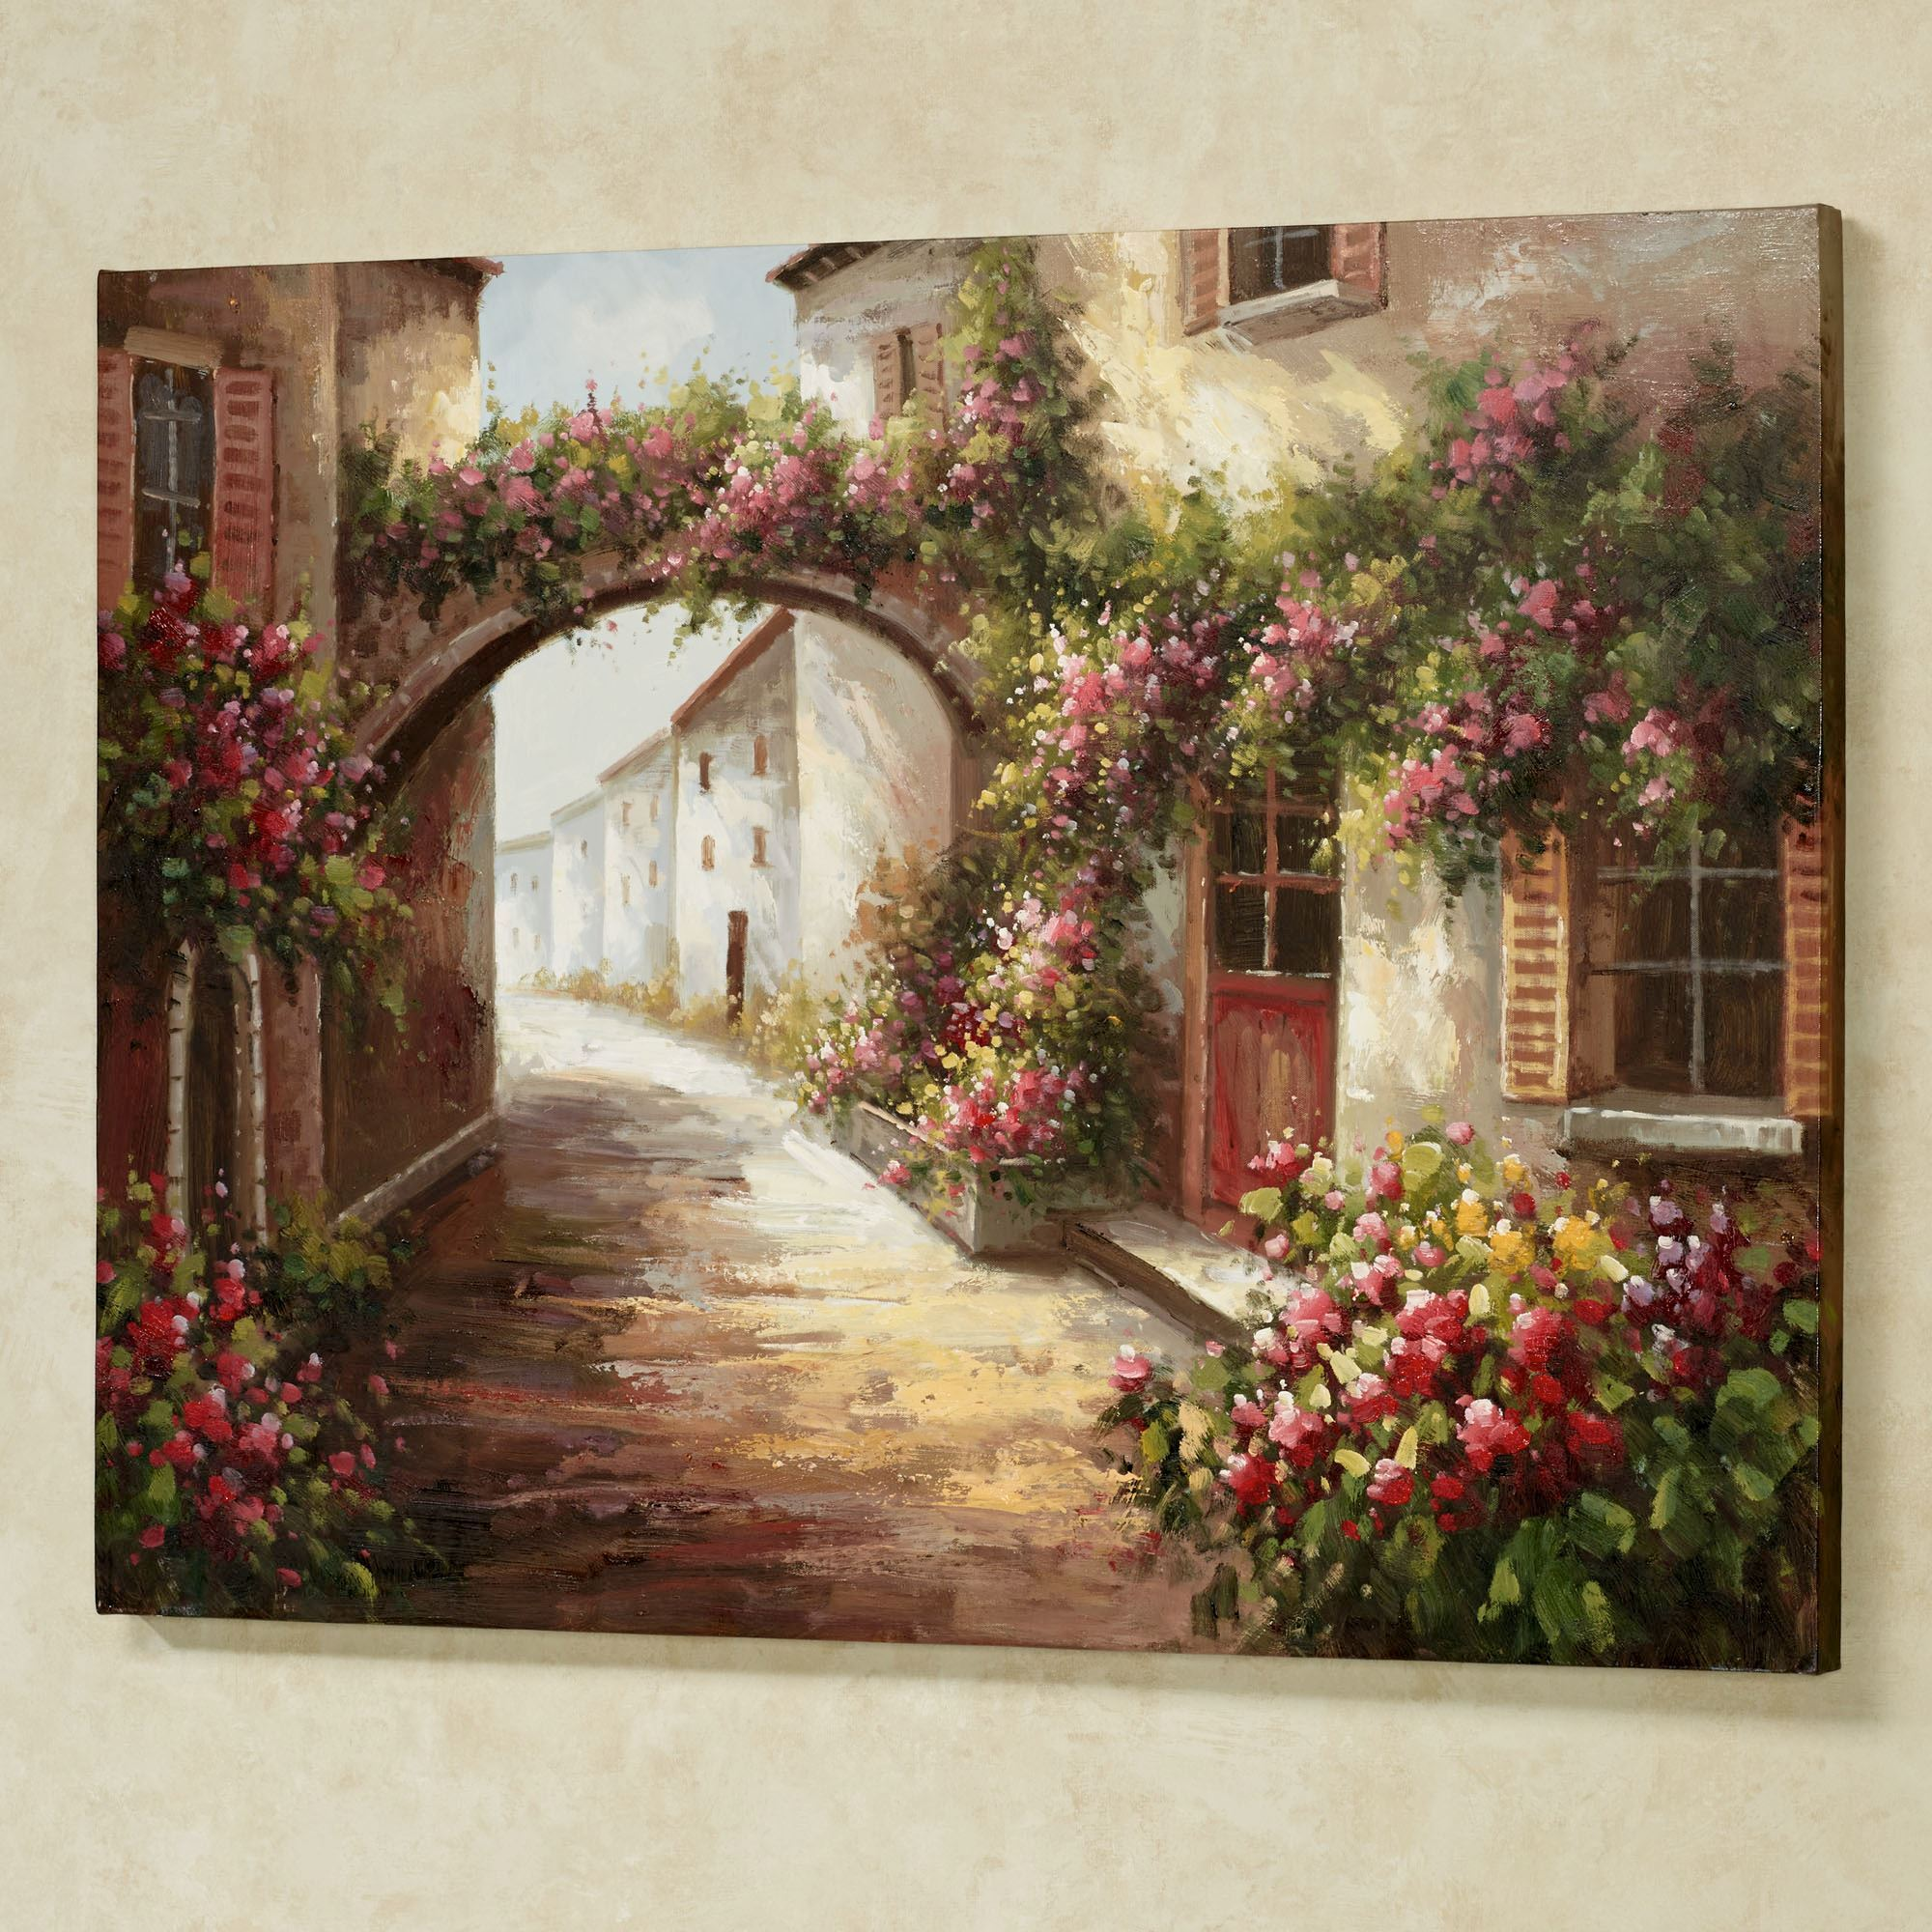 Tuscan Home Decor: Flowered Arch Tuscan Scene Canvas Wall Art